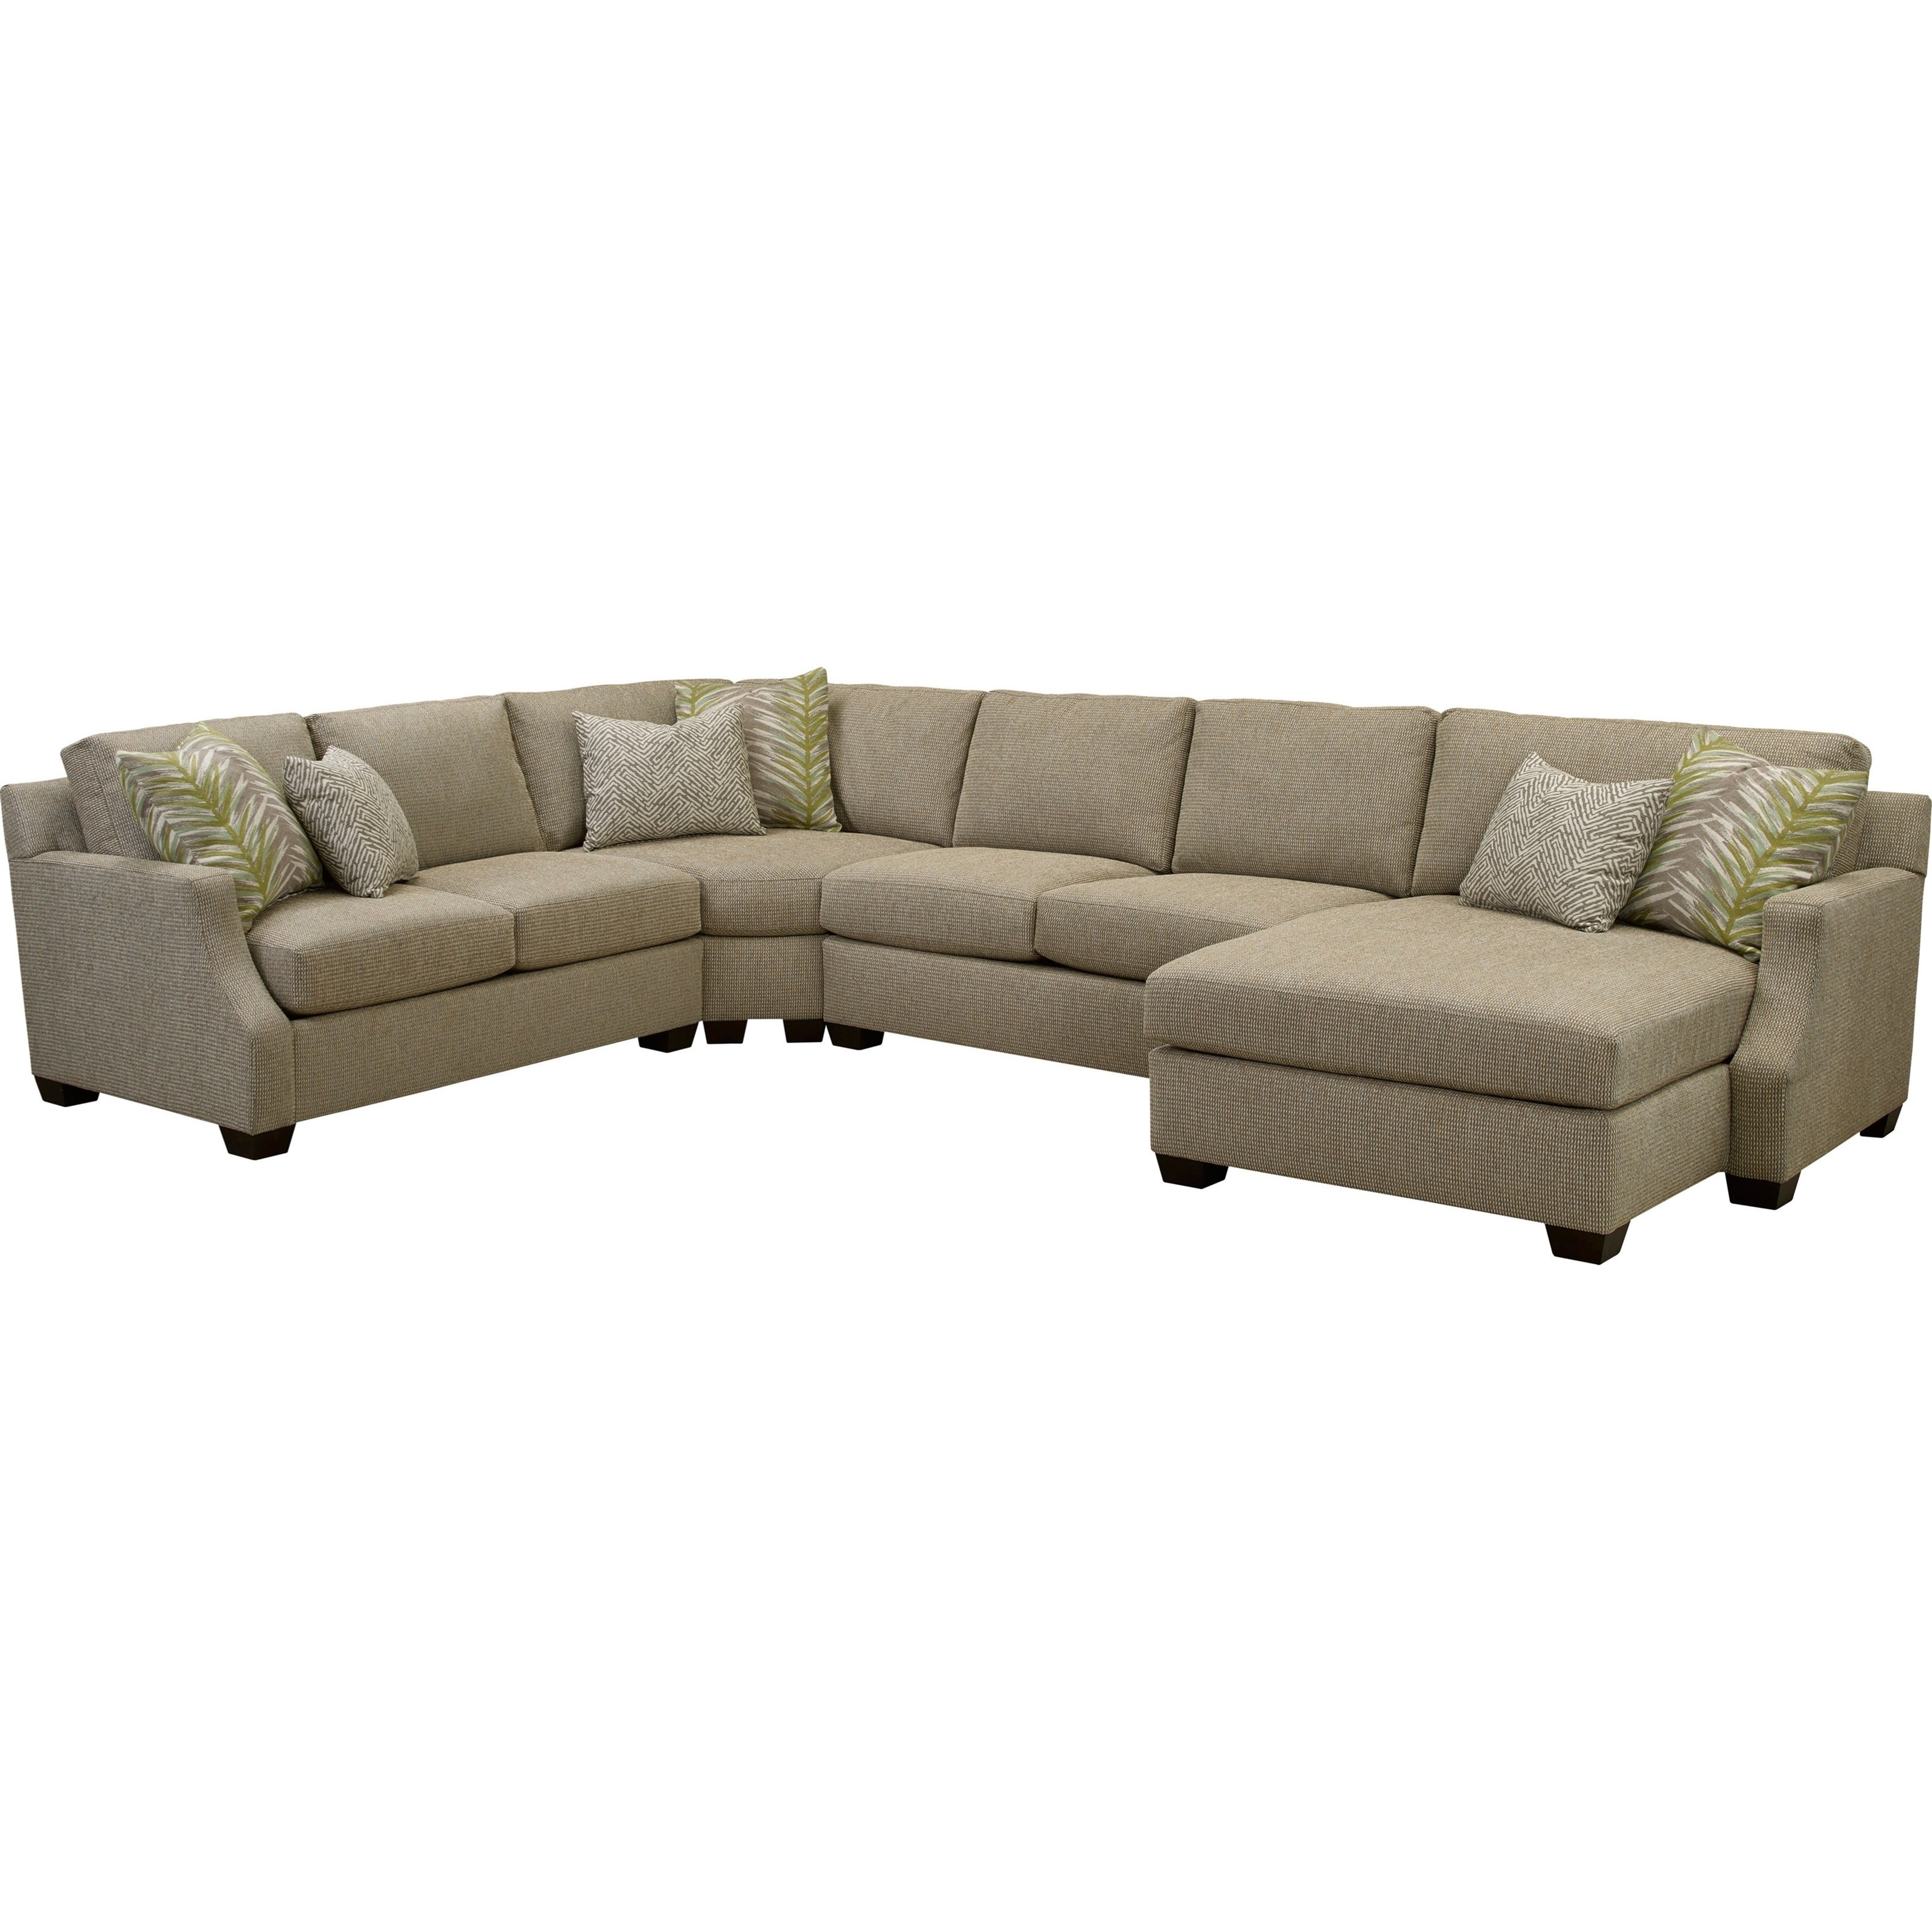 Broyhill Furniture Chambers Large 4 Pc (View 2 of 20)